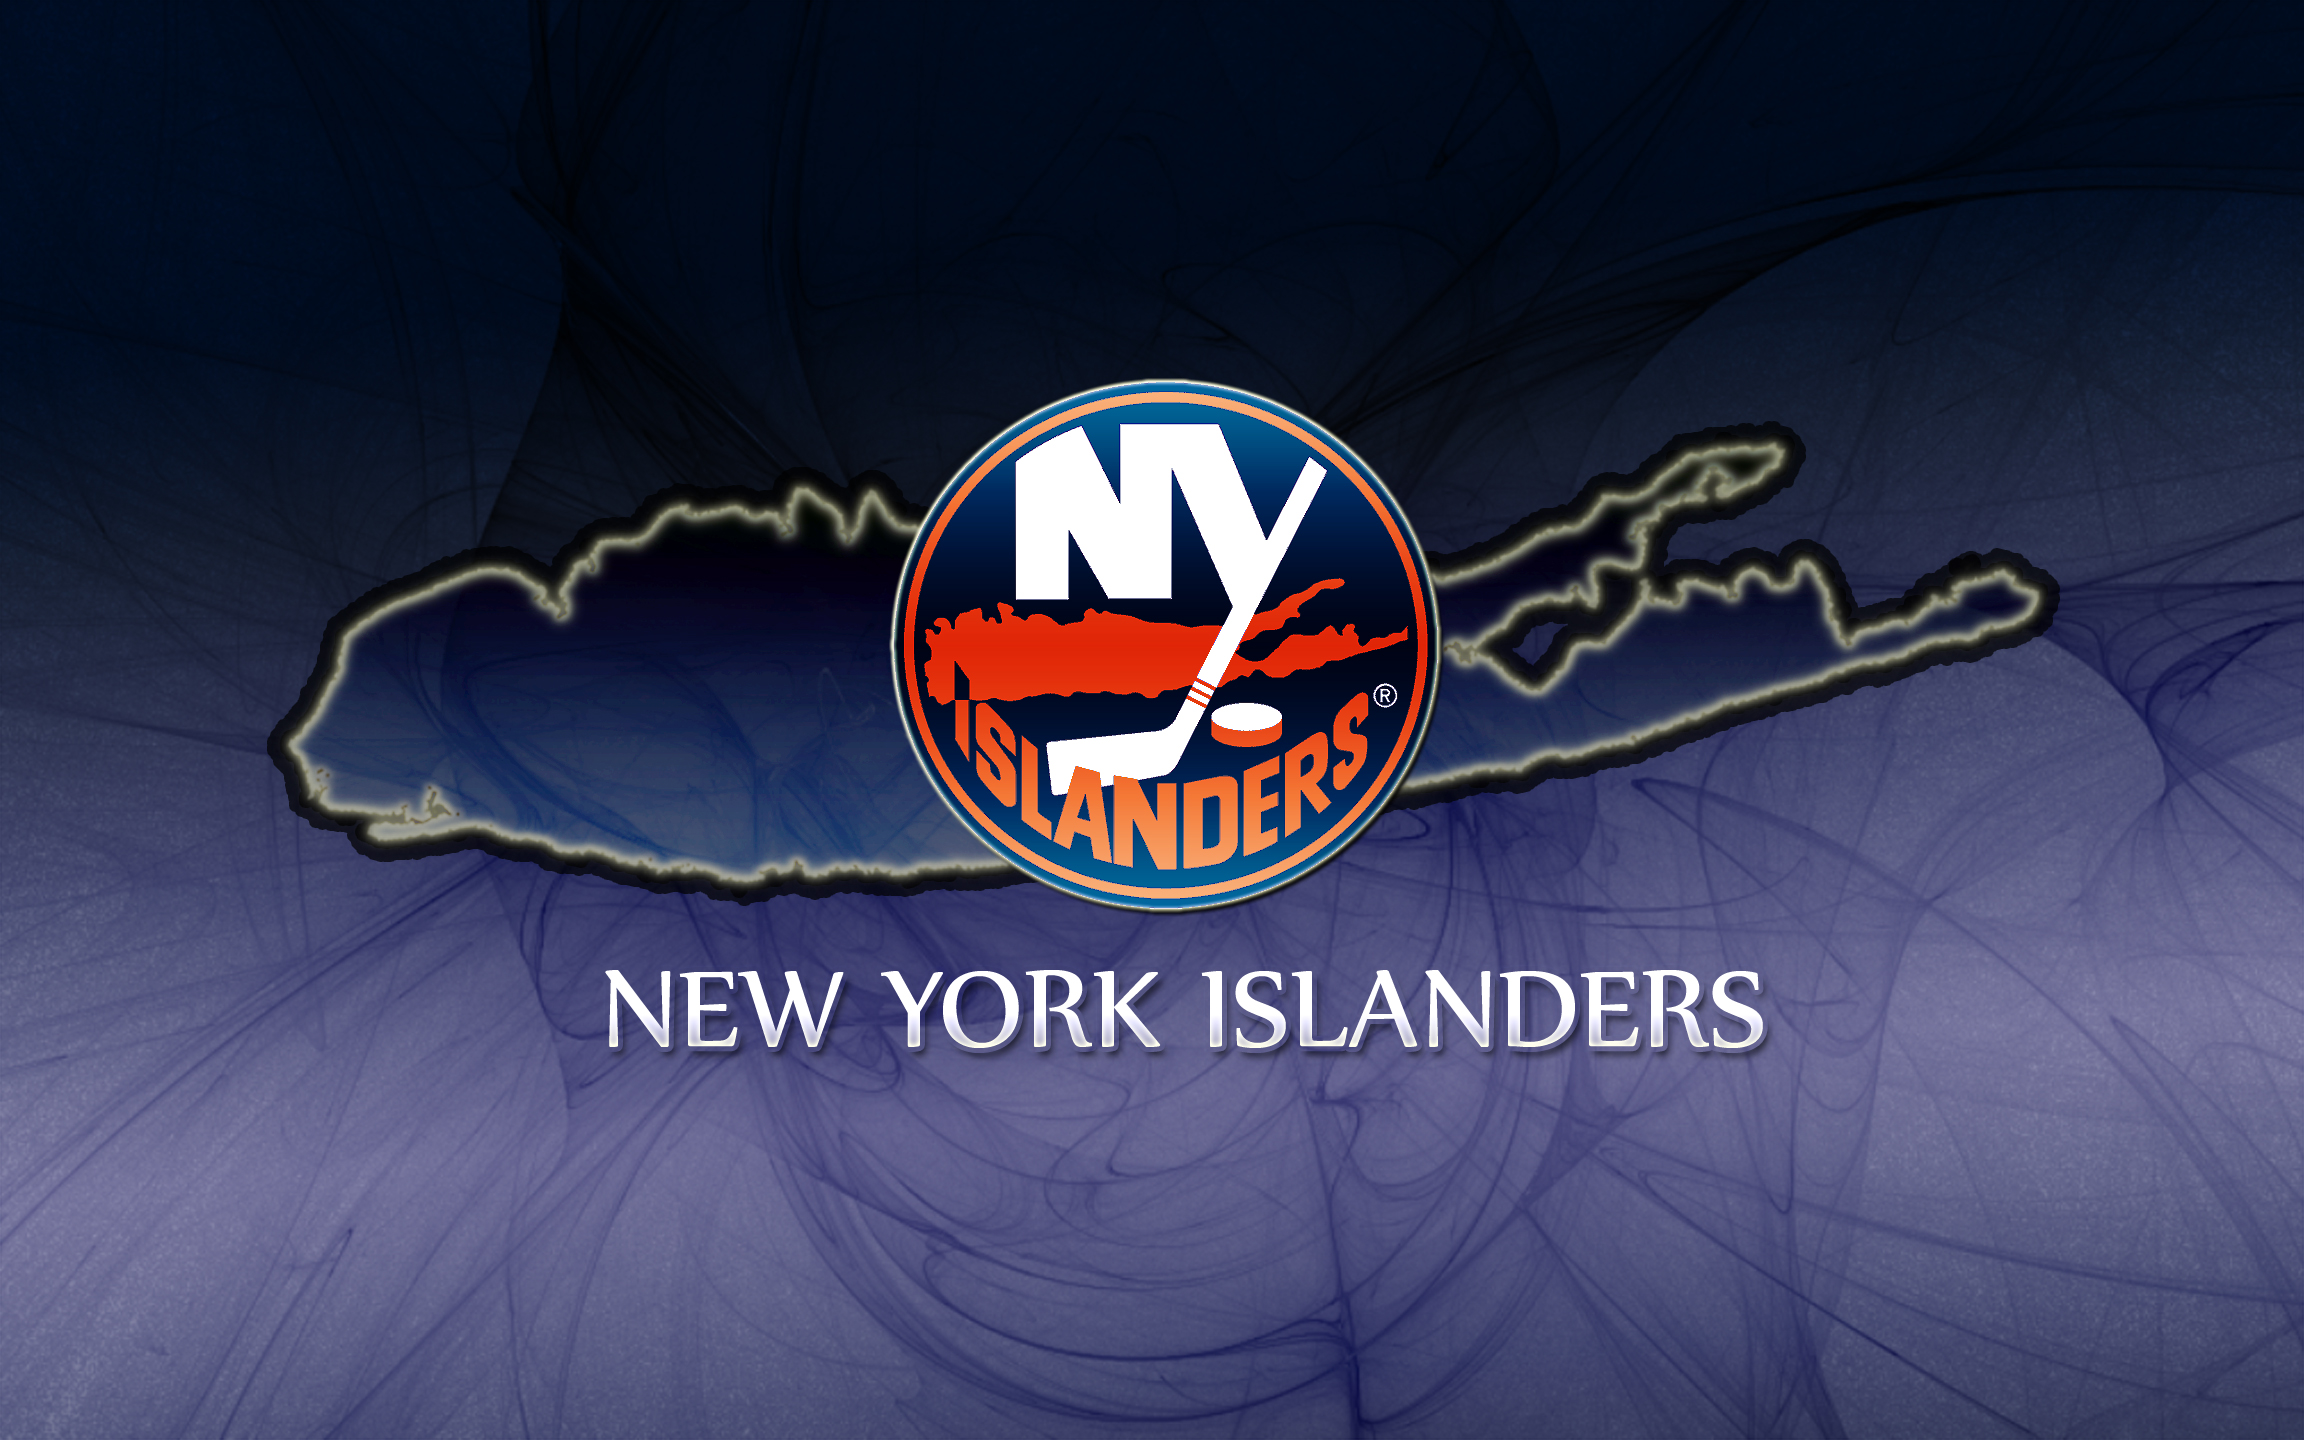 New York Islanders wallpapers New York Islanders background   Page 4 2304x1440